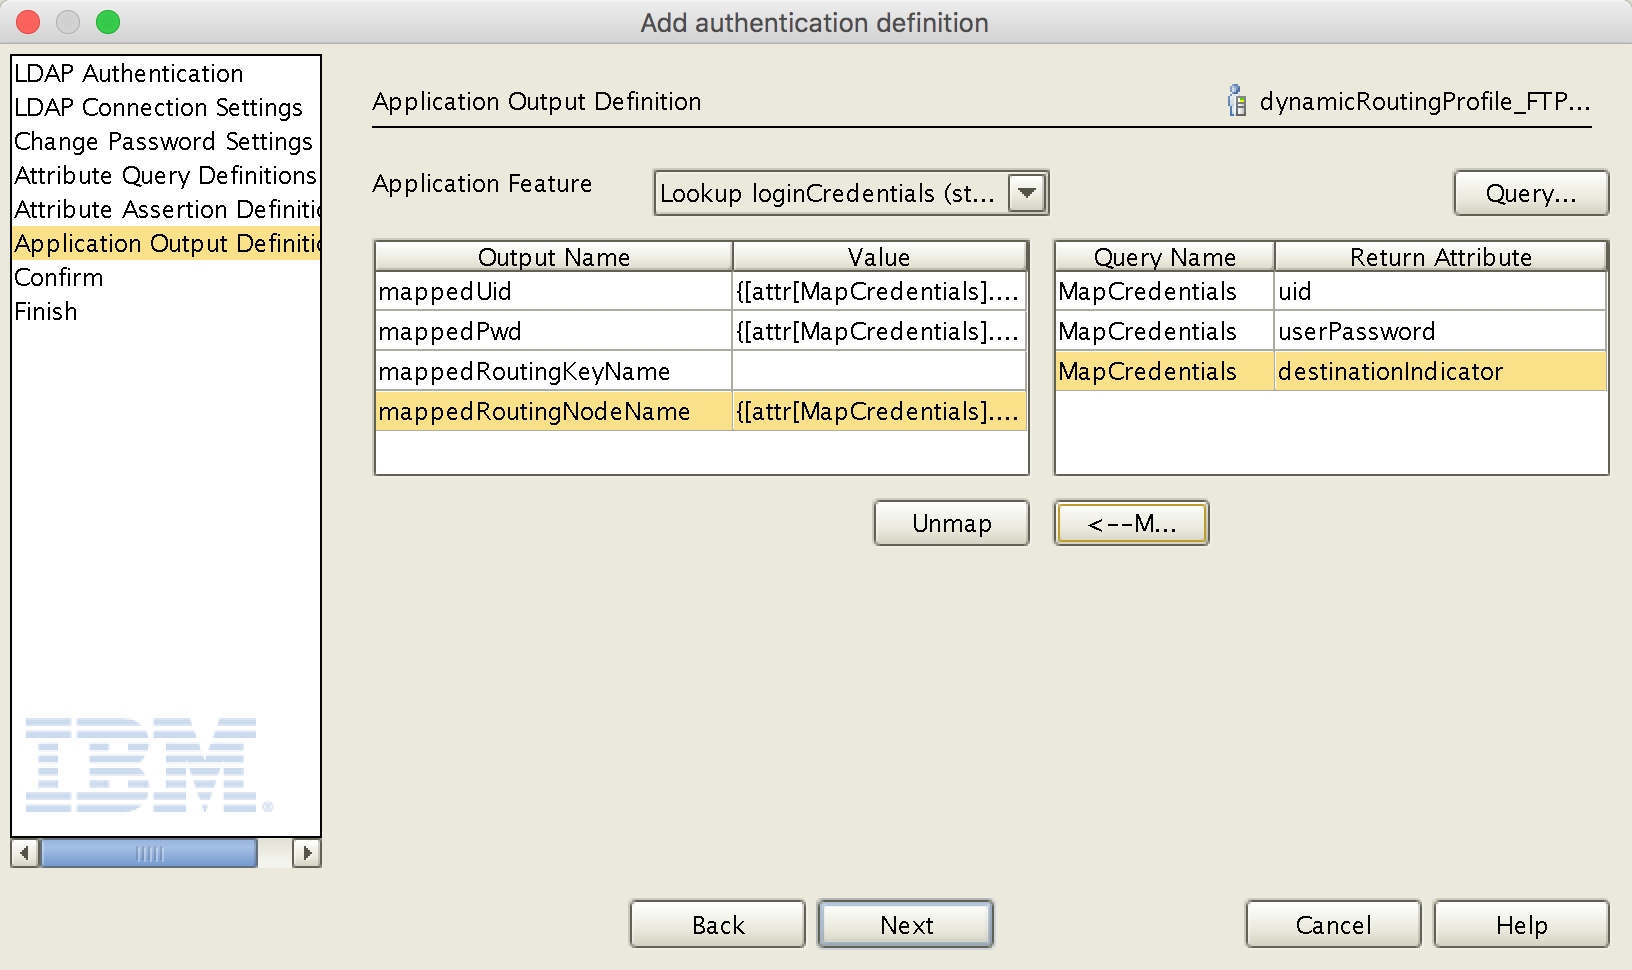 Authentication Definition - Application Output Definition